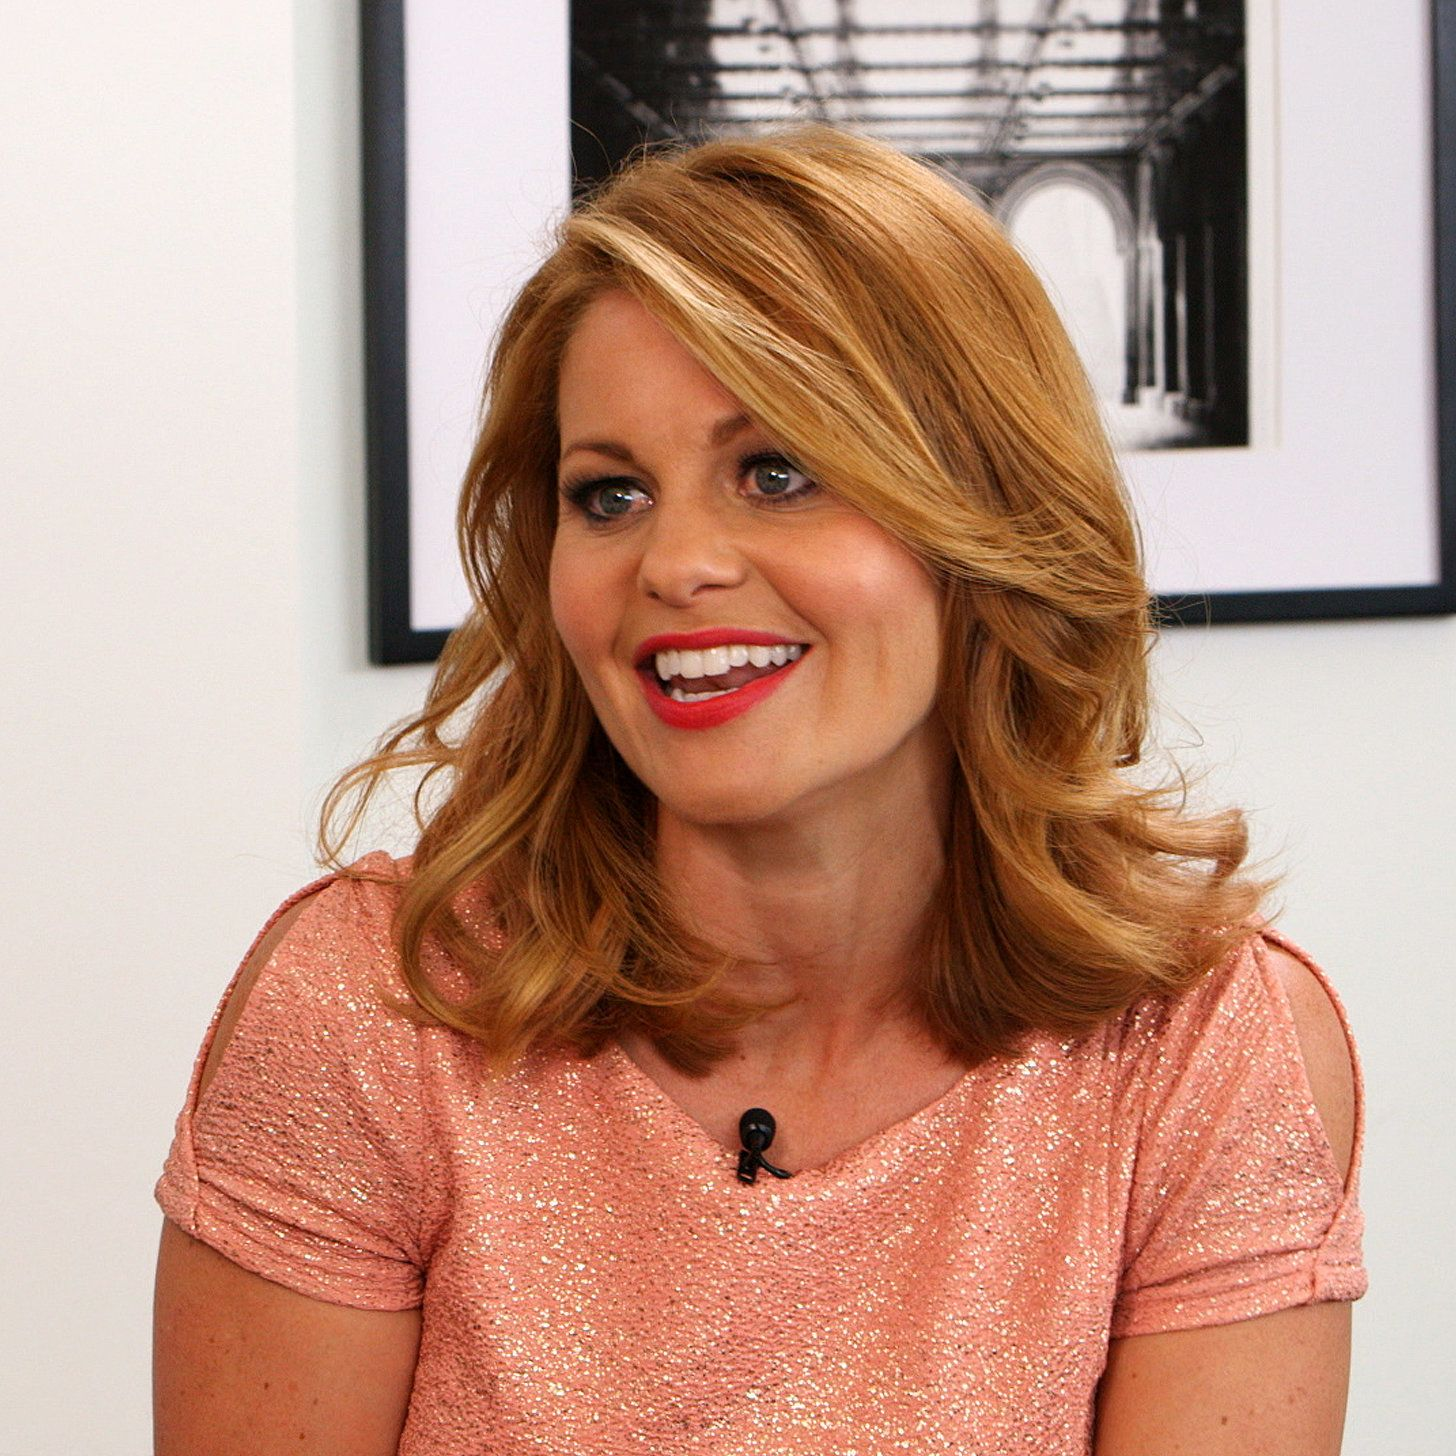 Fuller House Indeed Kimmy Gibbler and Stephanie Tanner to Move